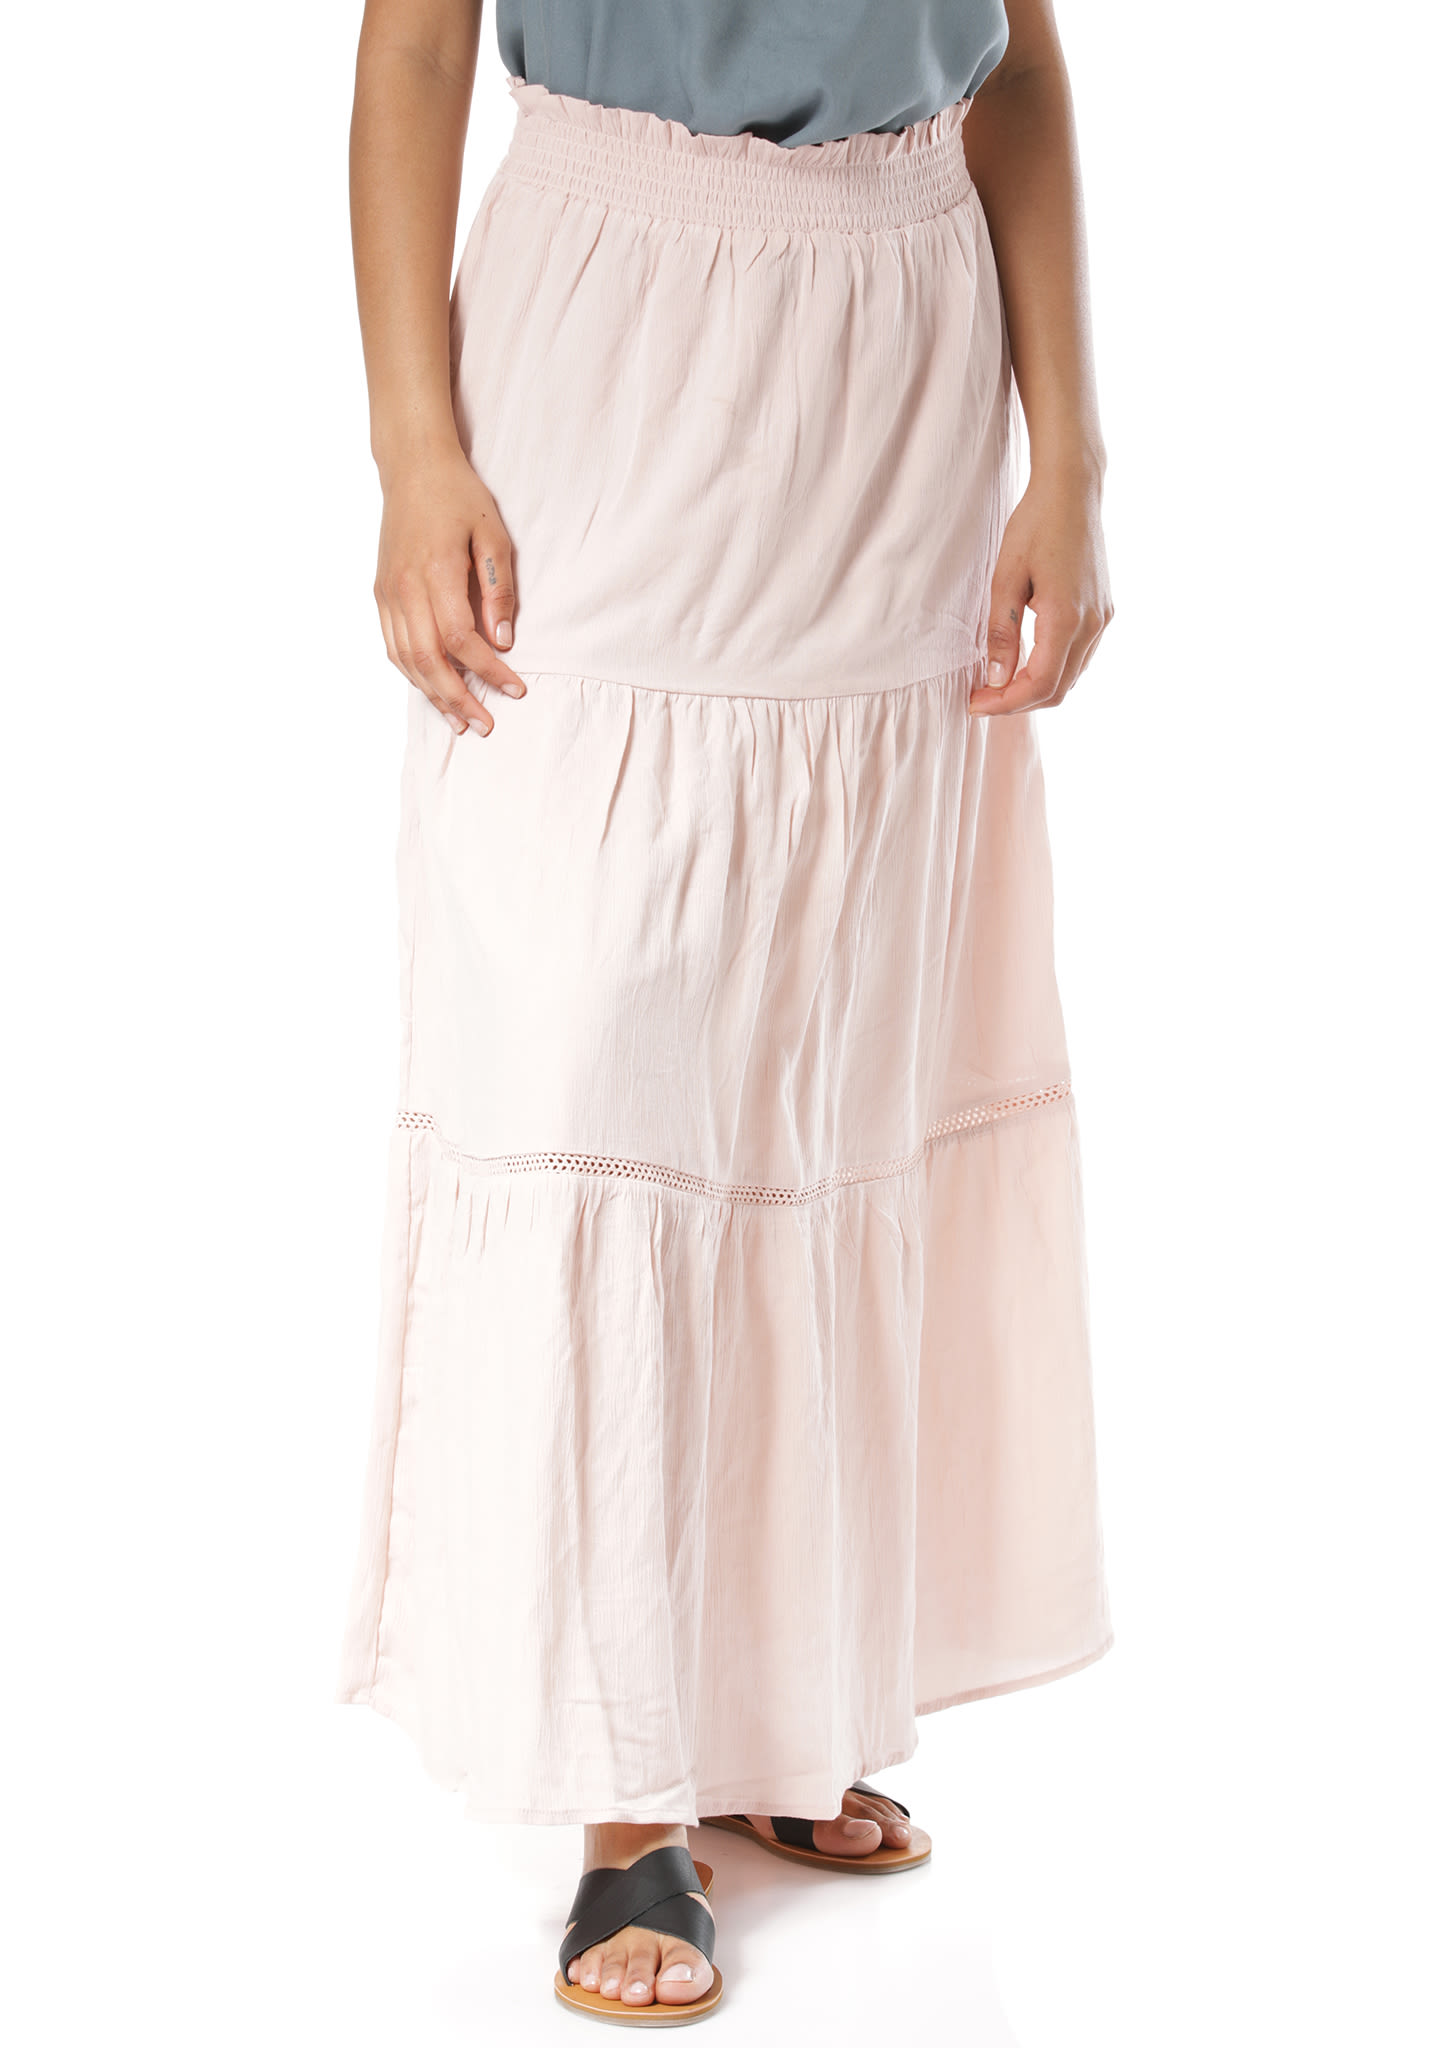 c6f4662133 Vila Vitaliah Maxi - Skirt for Women - Pink - Planet Sports